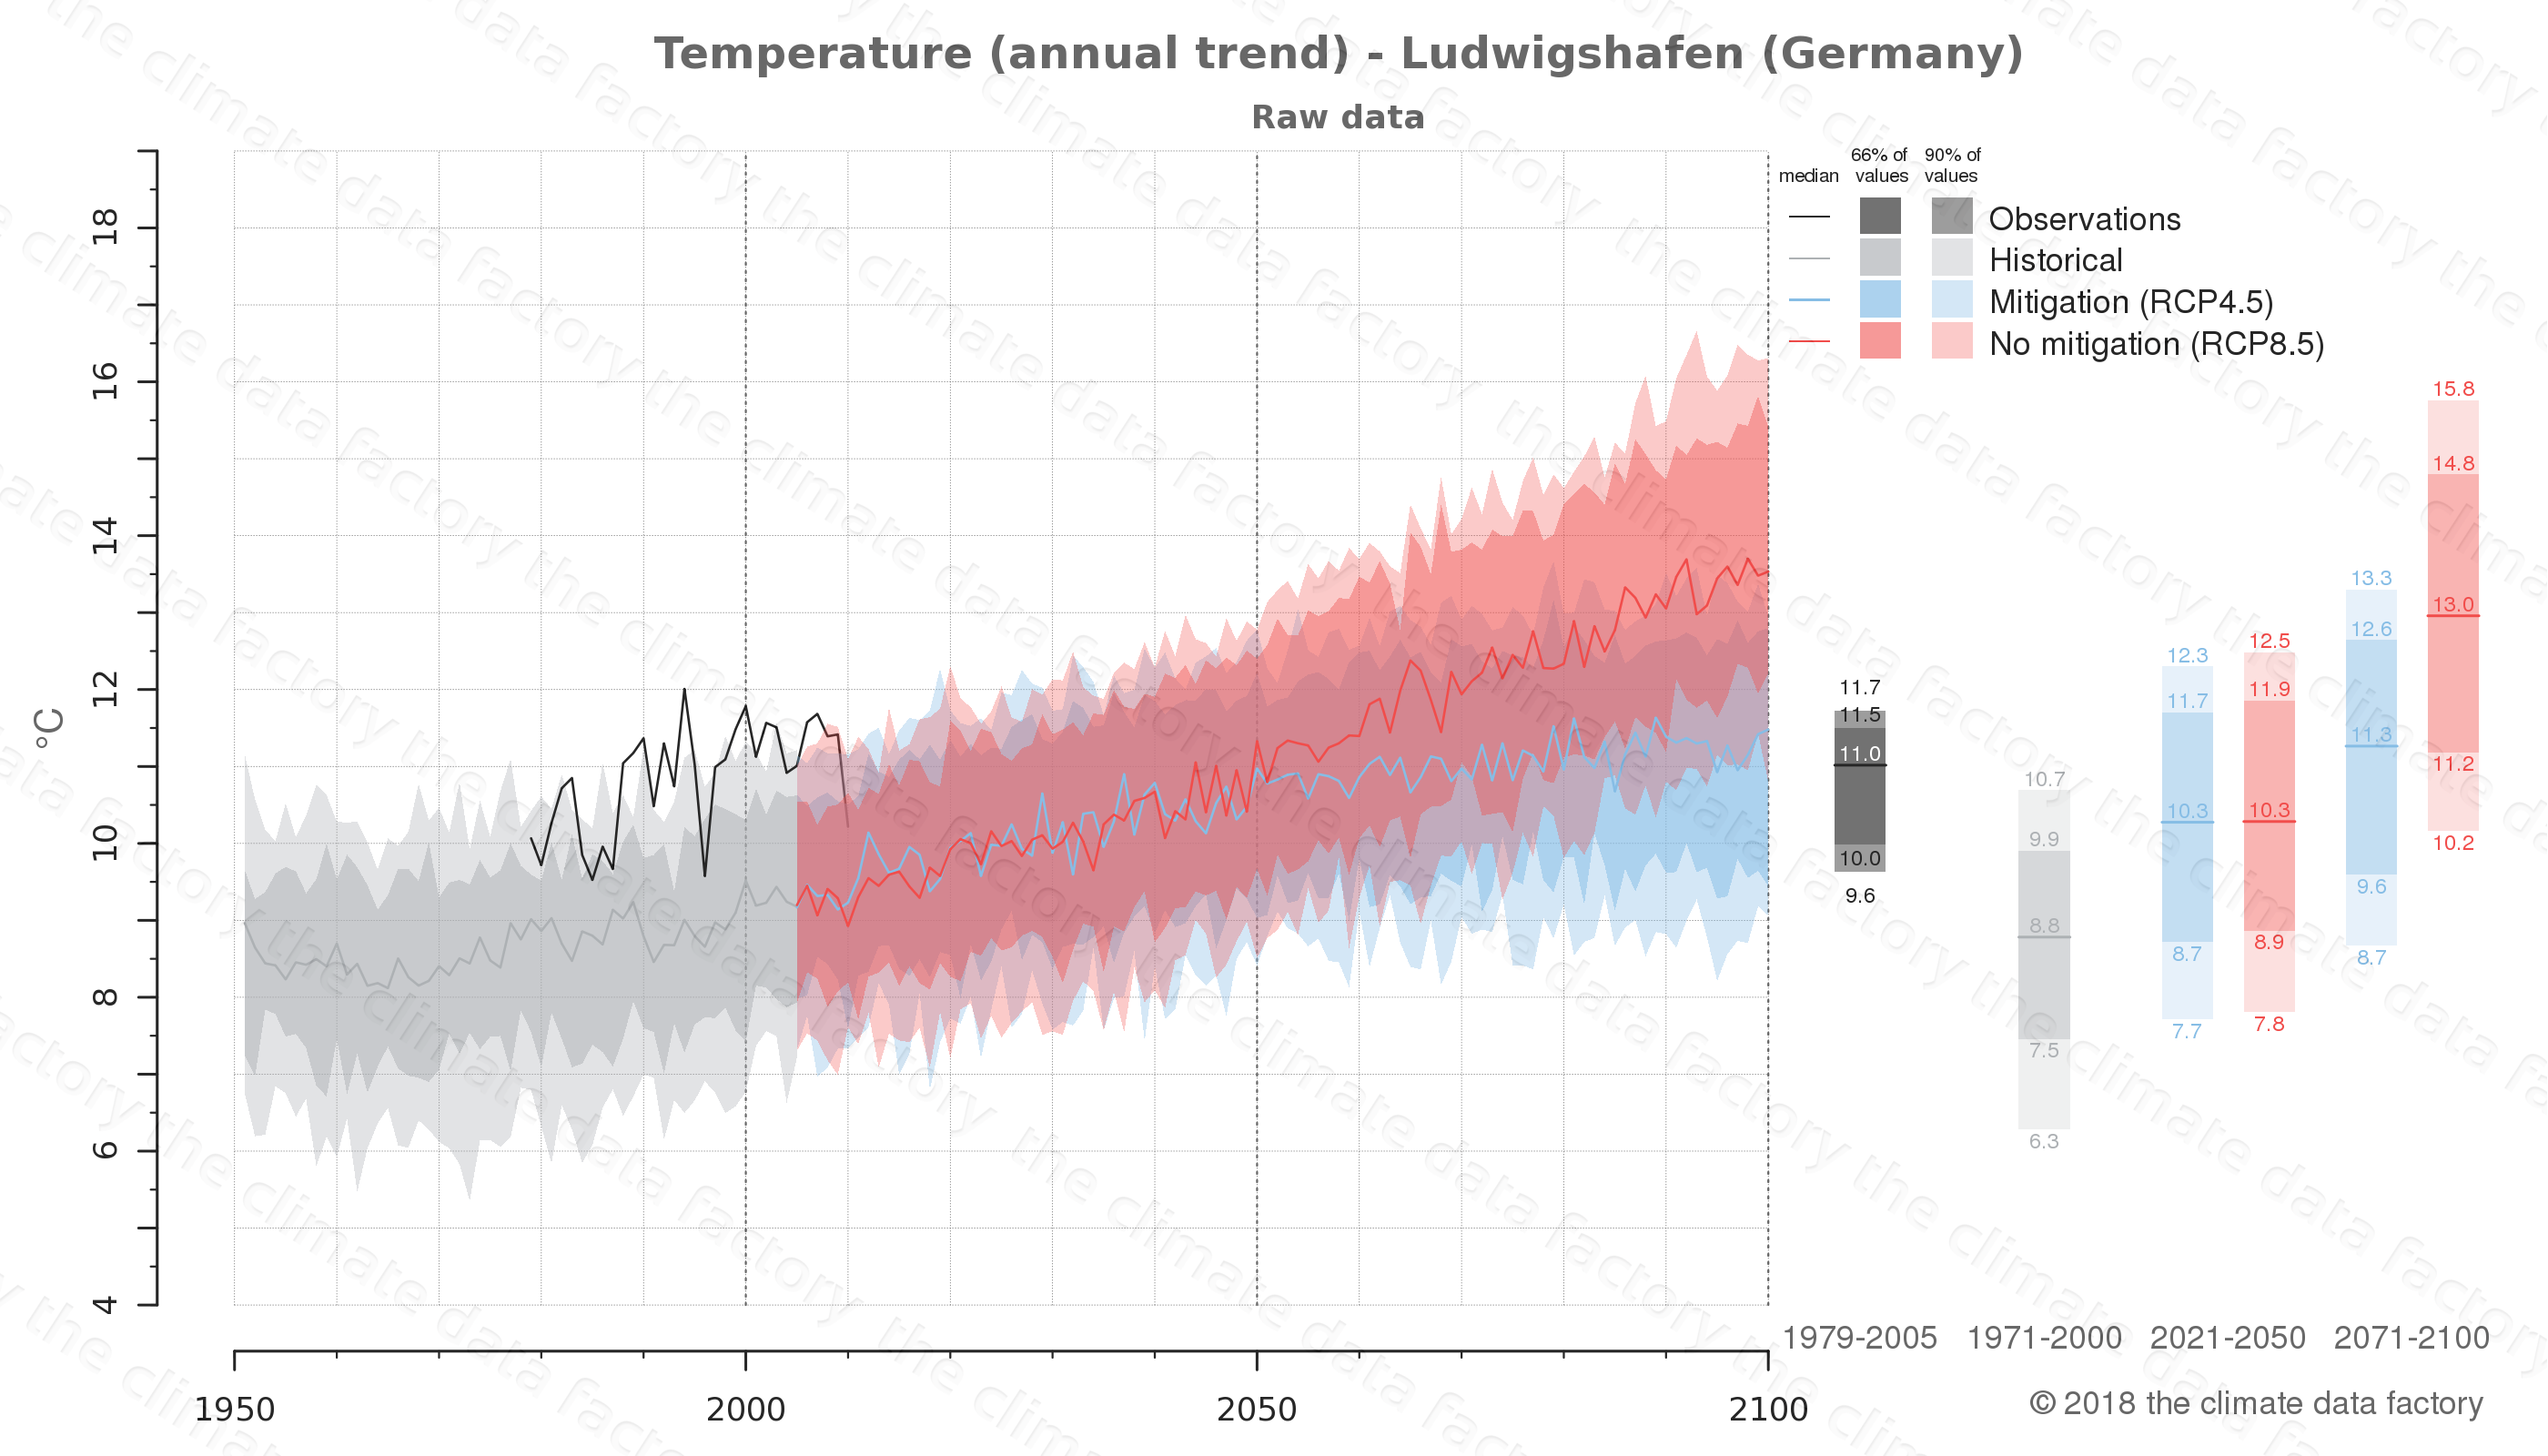 climate change data policy adaptation climate graph city data temperature ludwigshafen germany